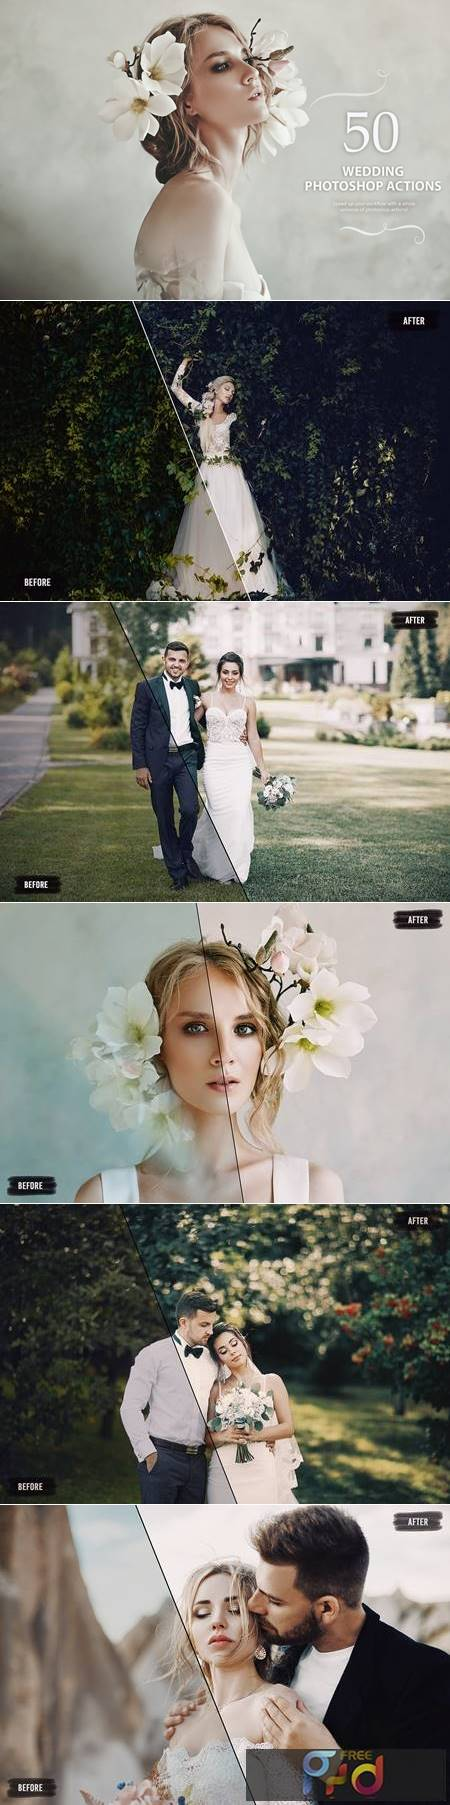 50 Wedding Photoshop Actions NS9NTPR 1